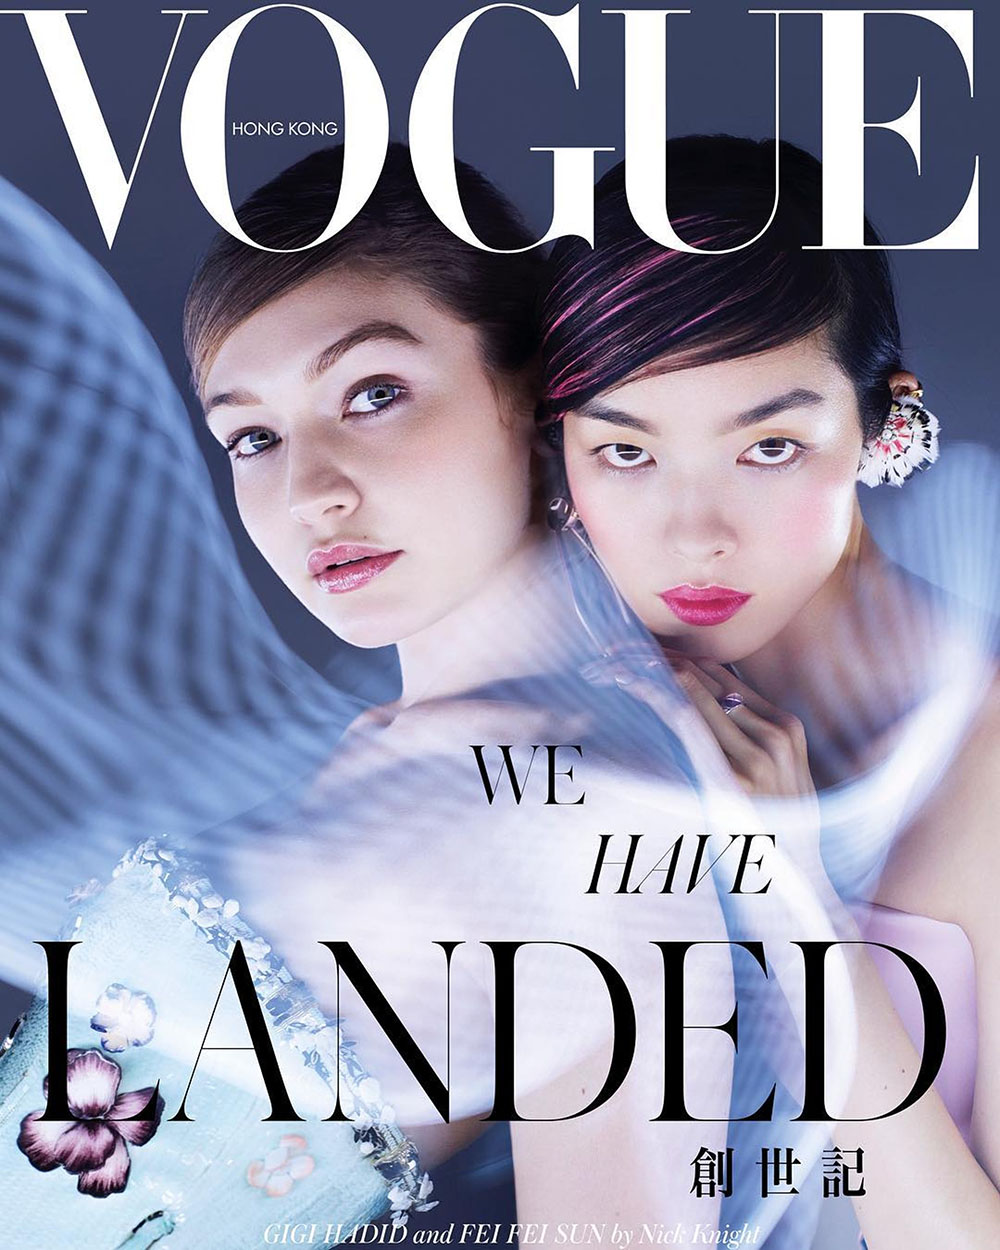 Gigi Hadid and Fei Fei Sun cover Vogue Hong Kong March 2019 by Nick Knight